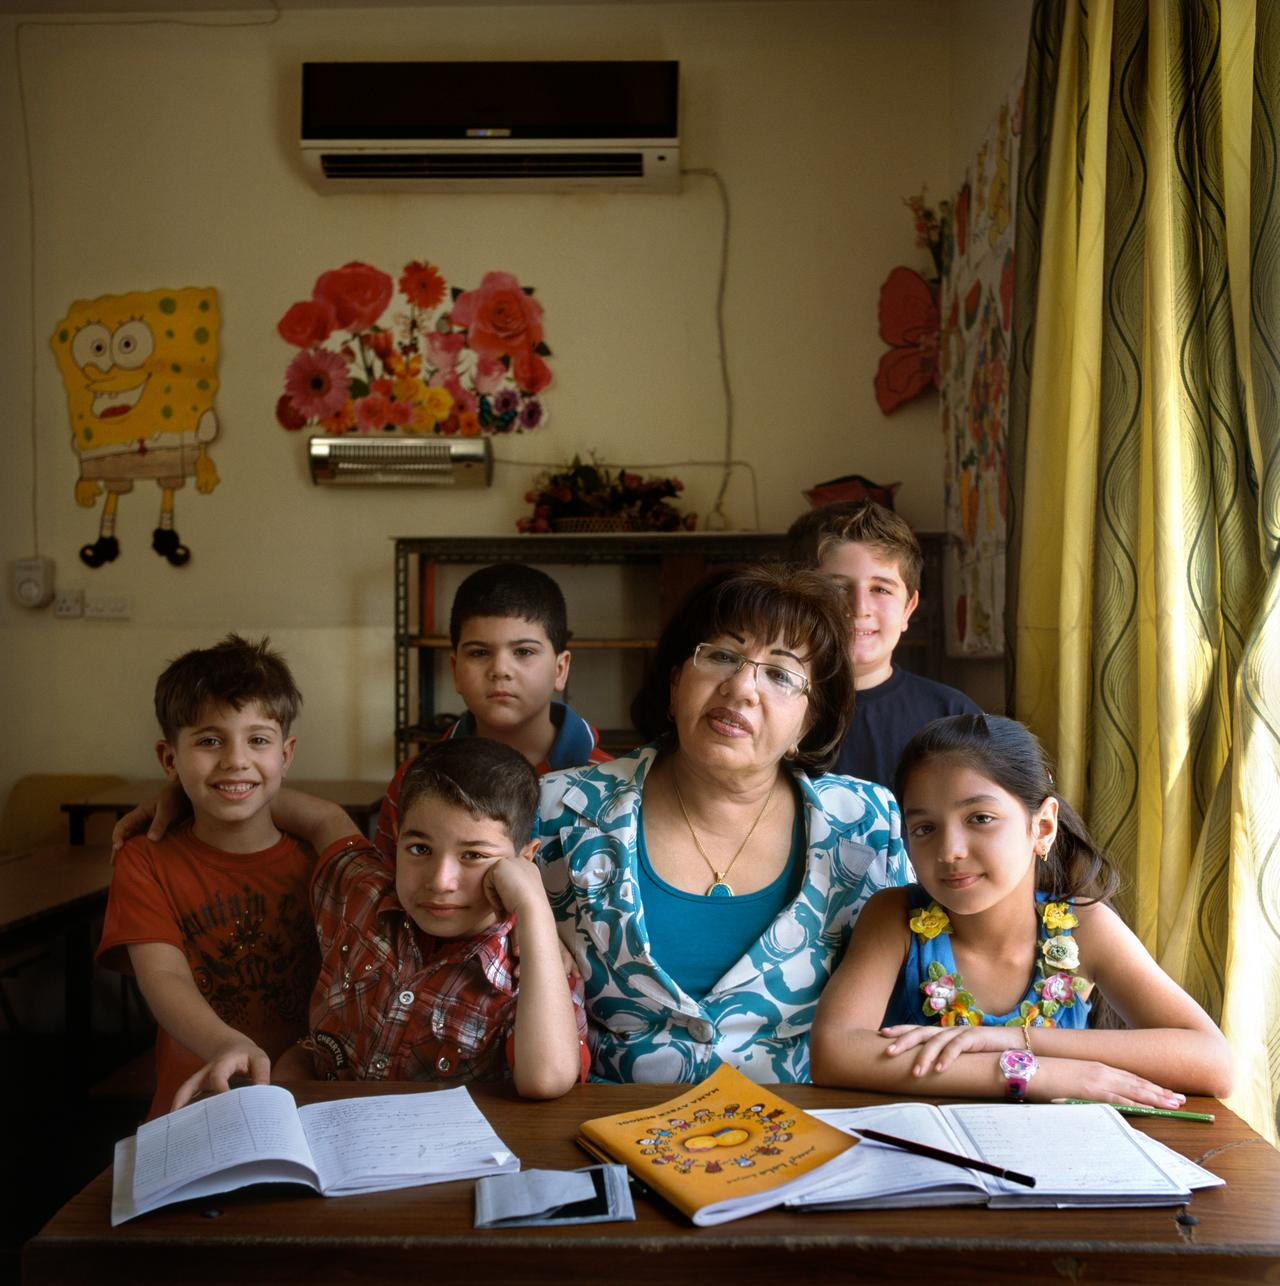 A portrait of Mama Ayser in one of the classrooms, in between some of her young Iraqi students.